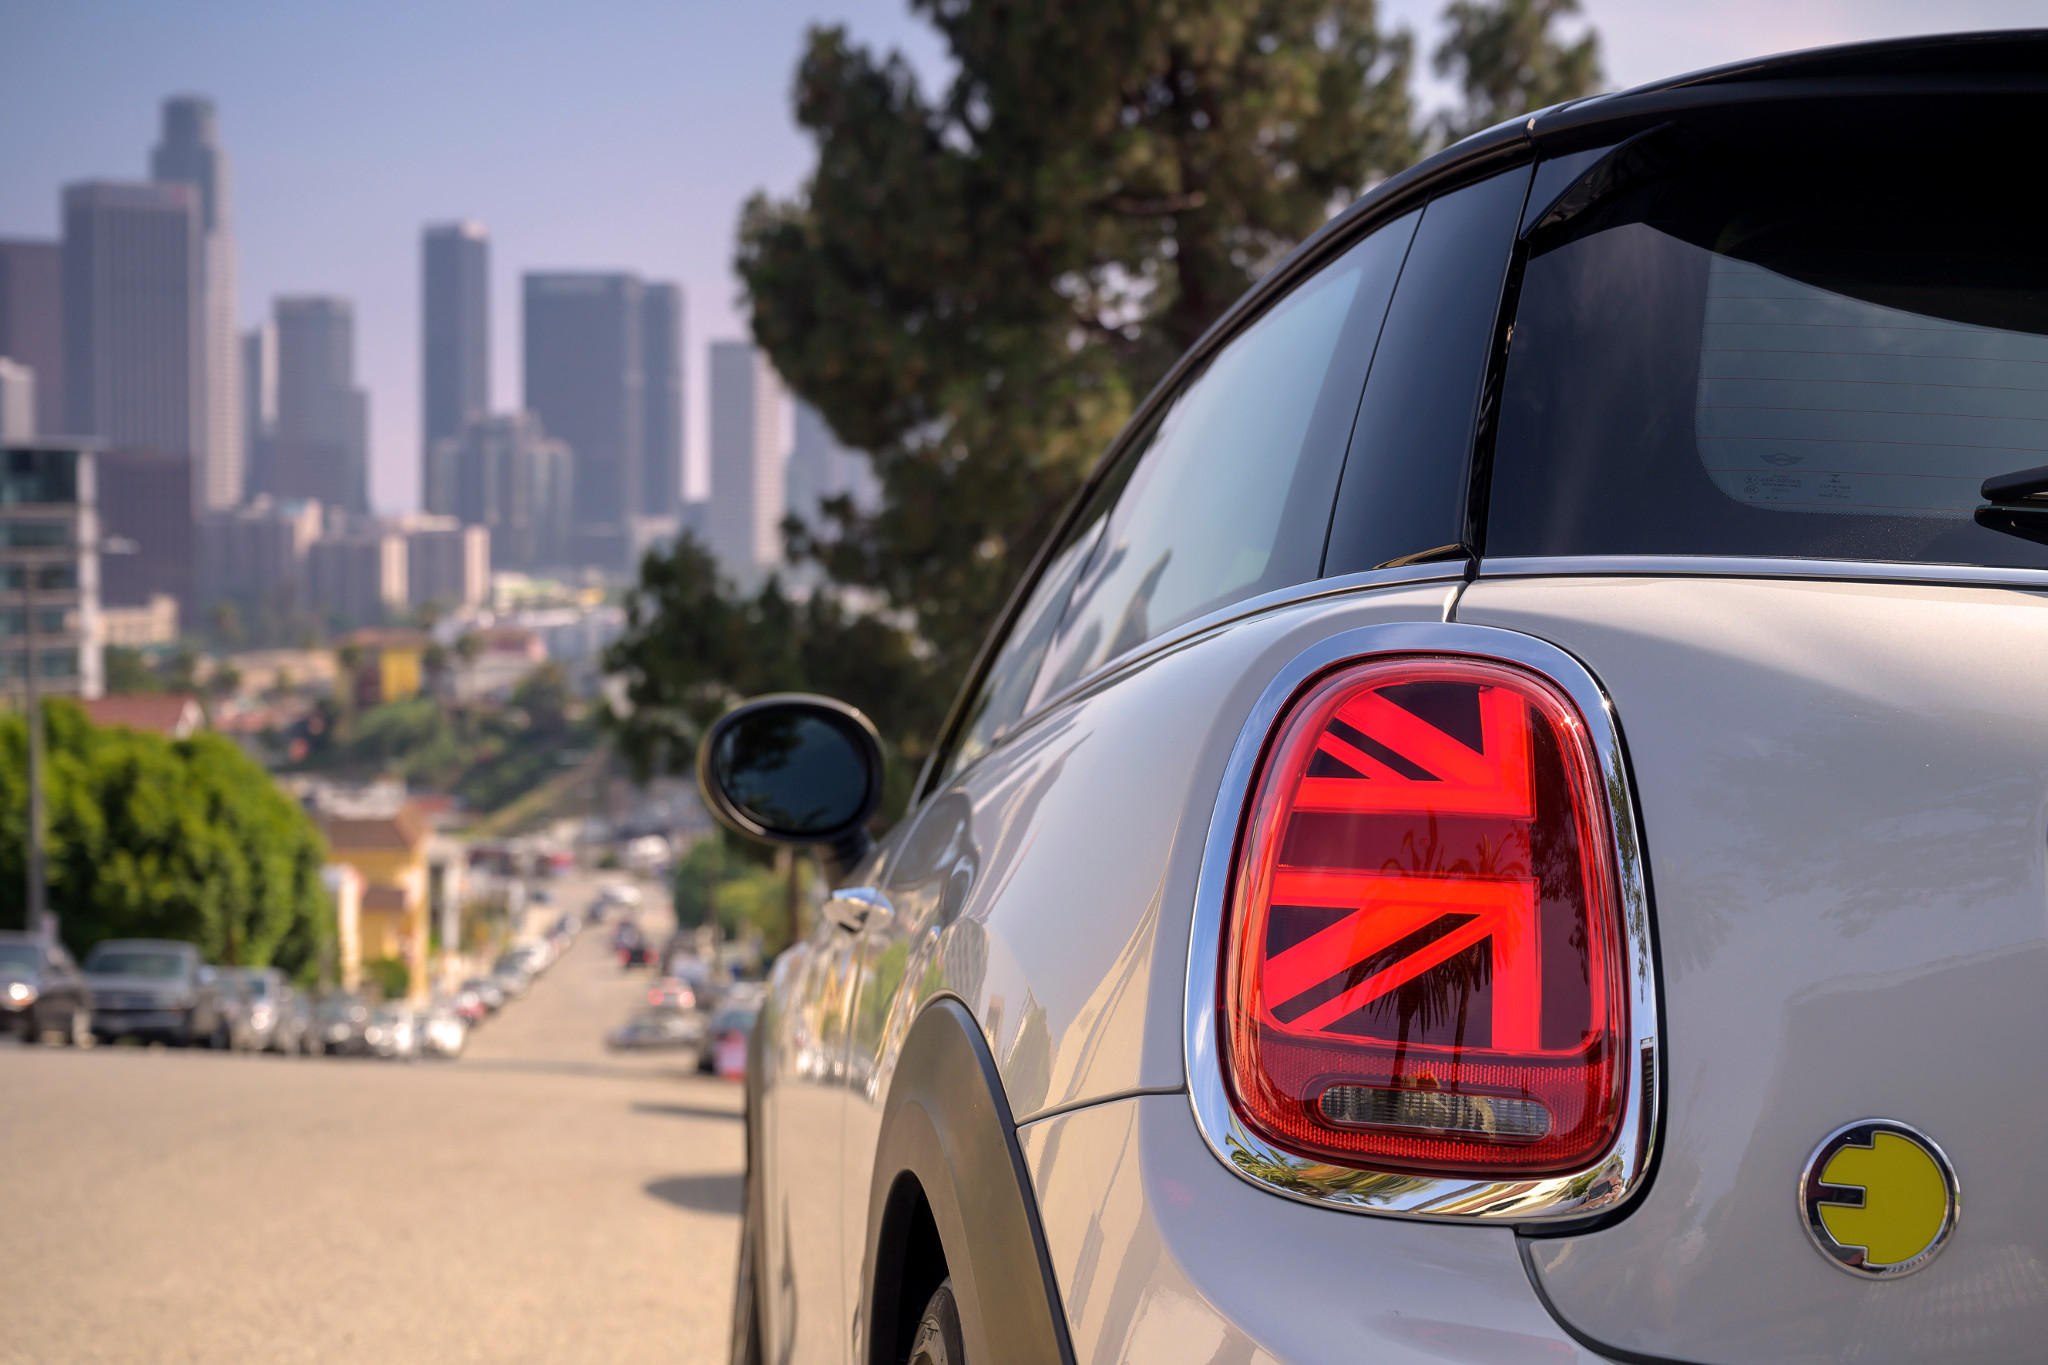 mini-cooper-se-electric-2020-10-detail--exterior--rear--taillights--white.jpg